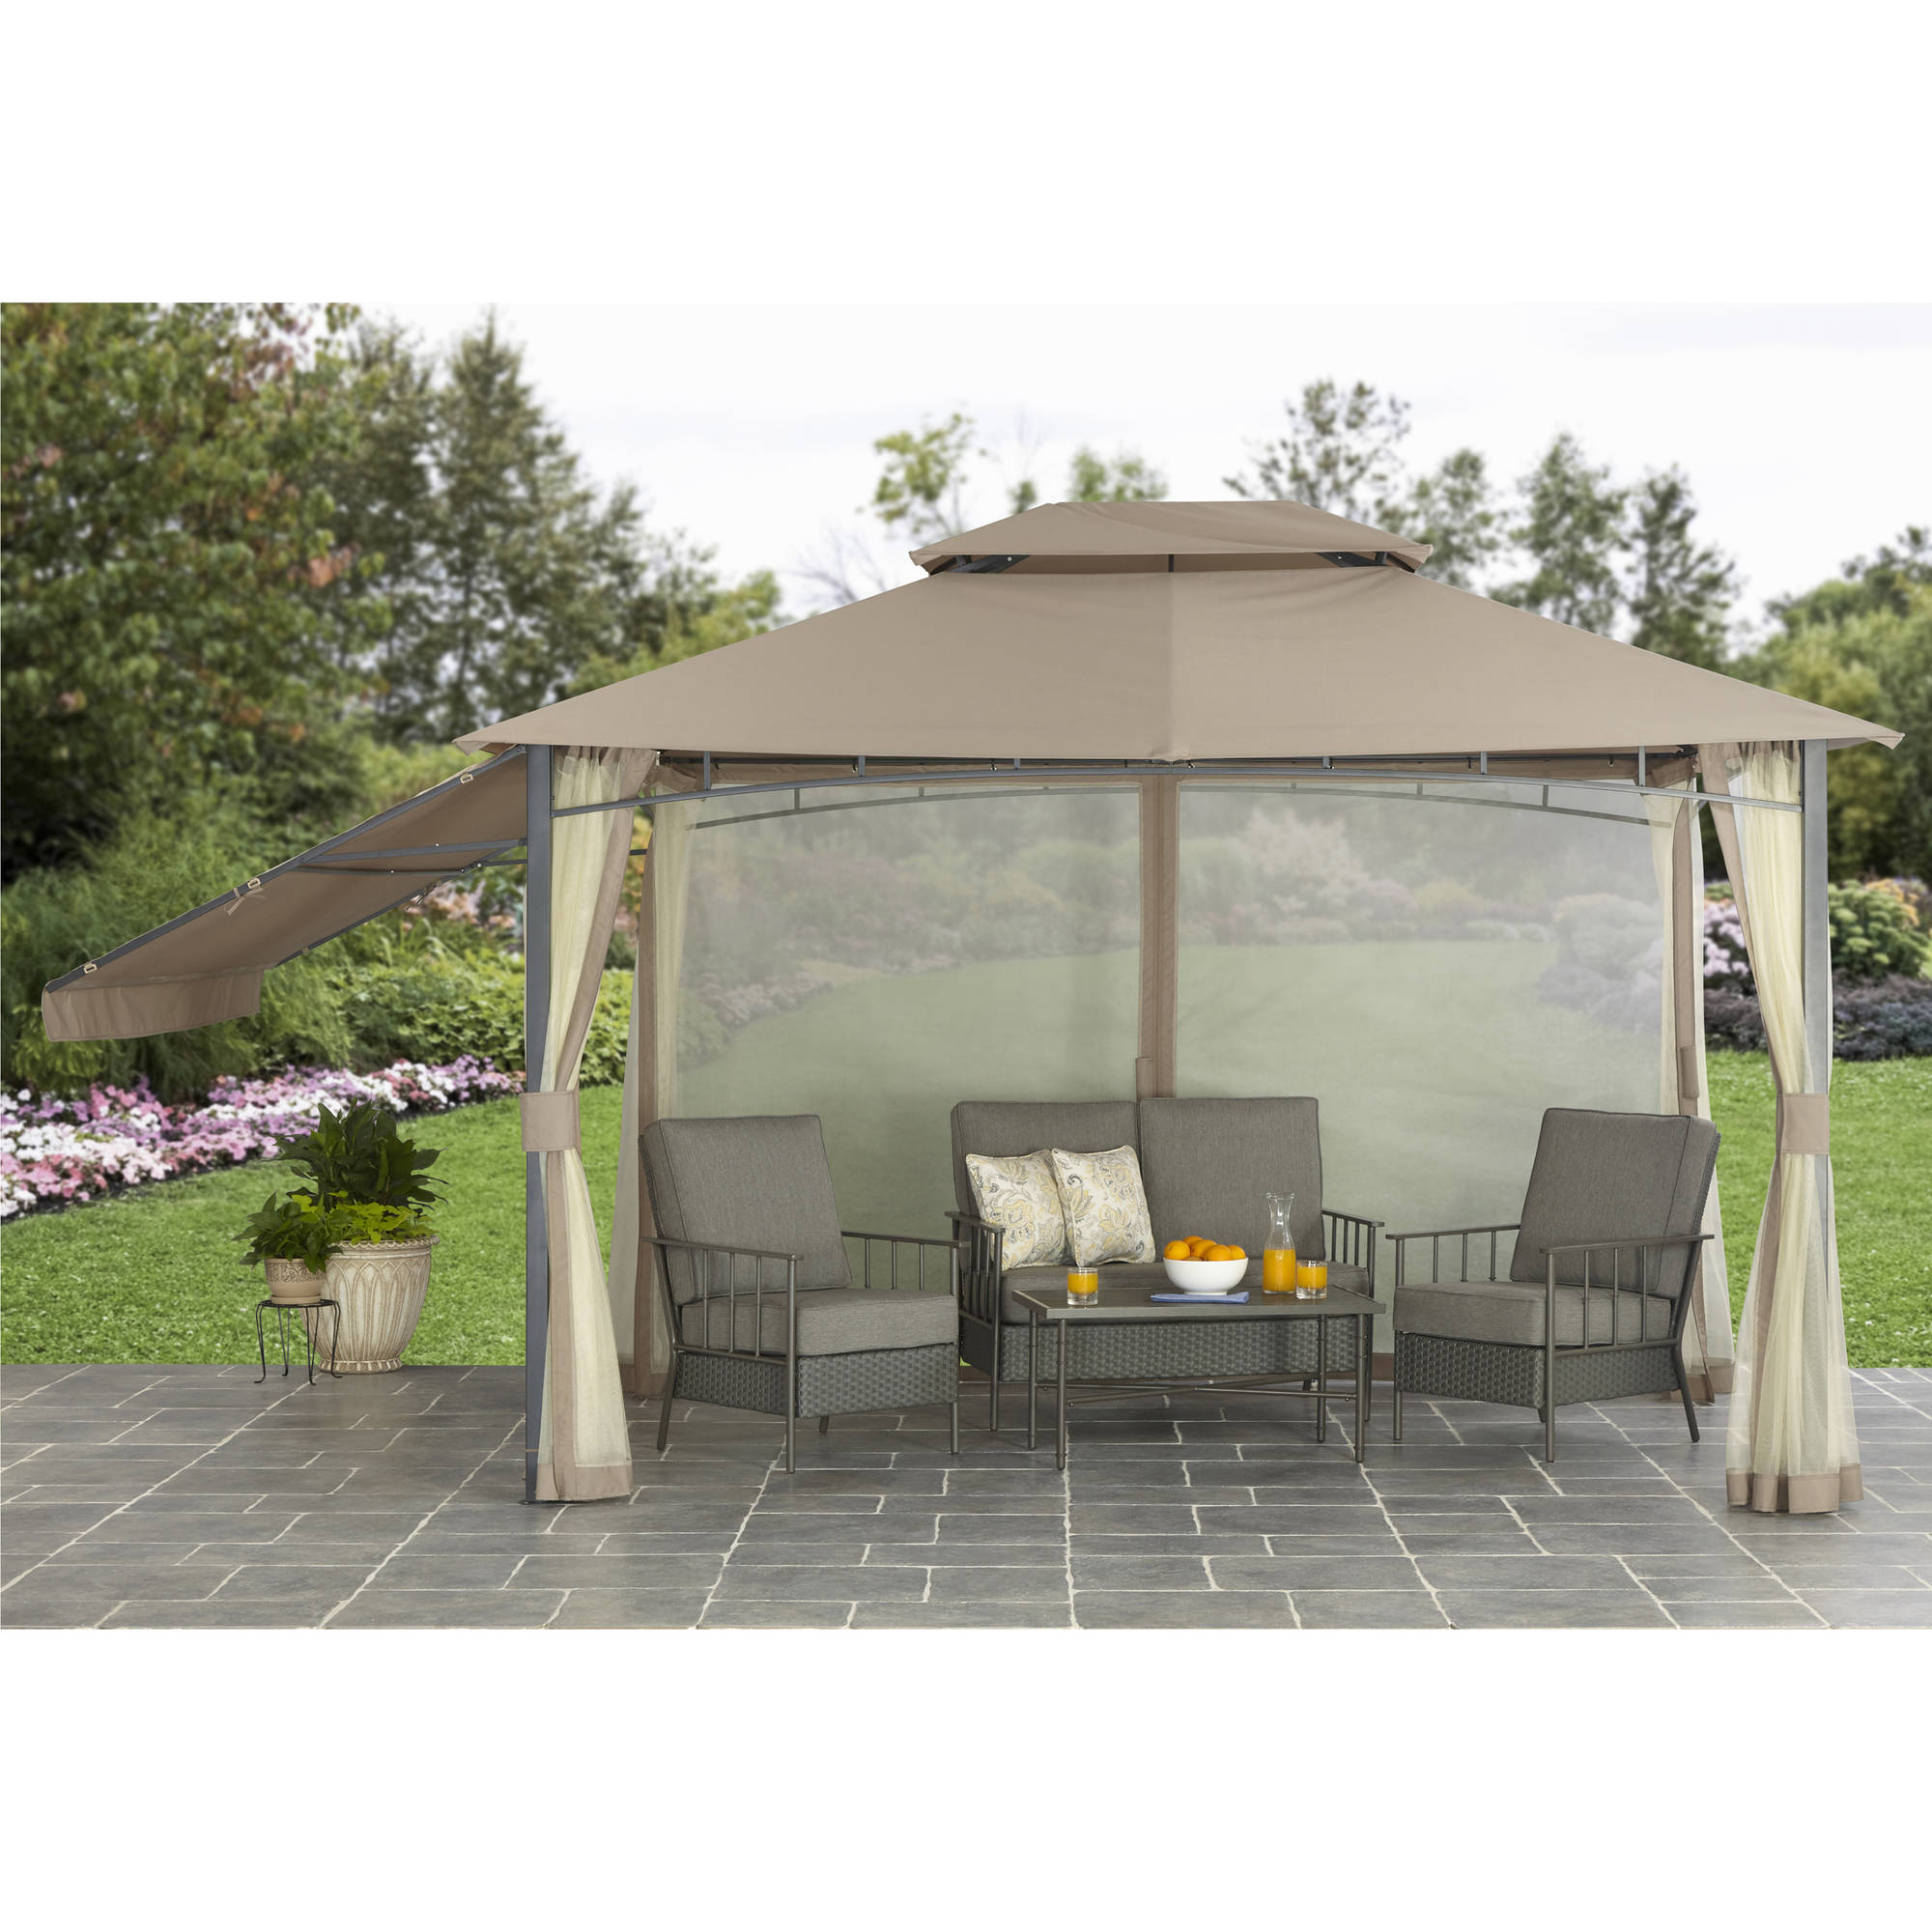 Better Homes and Garden Parker Creek 10' x 12' Cabin Style Gazebo with Adjustable Side by Gazebos